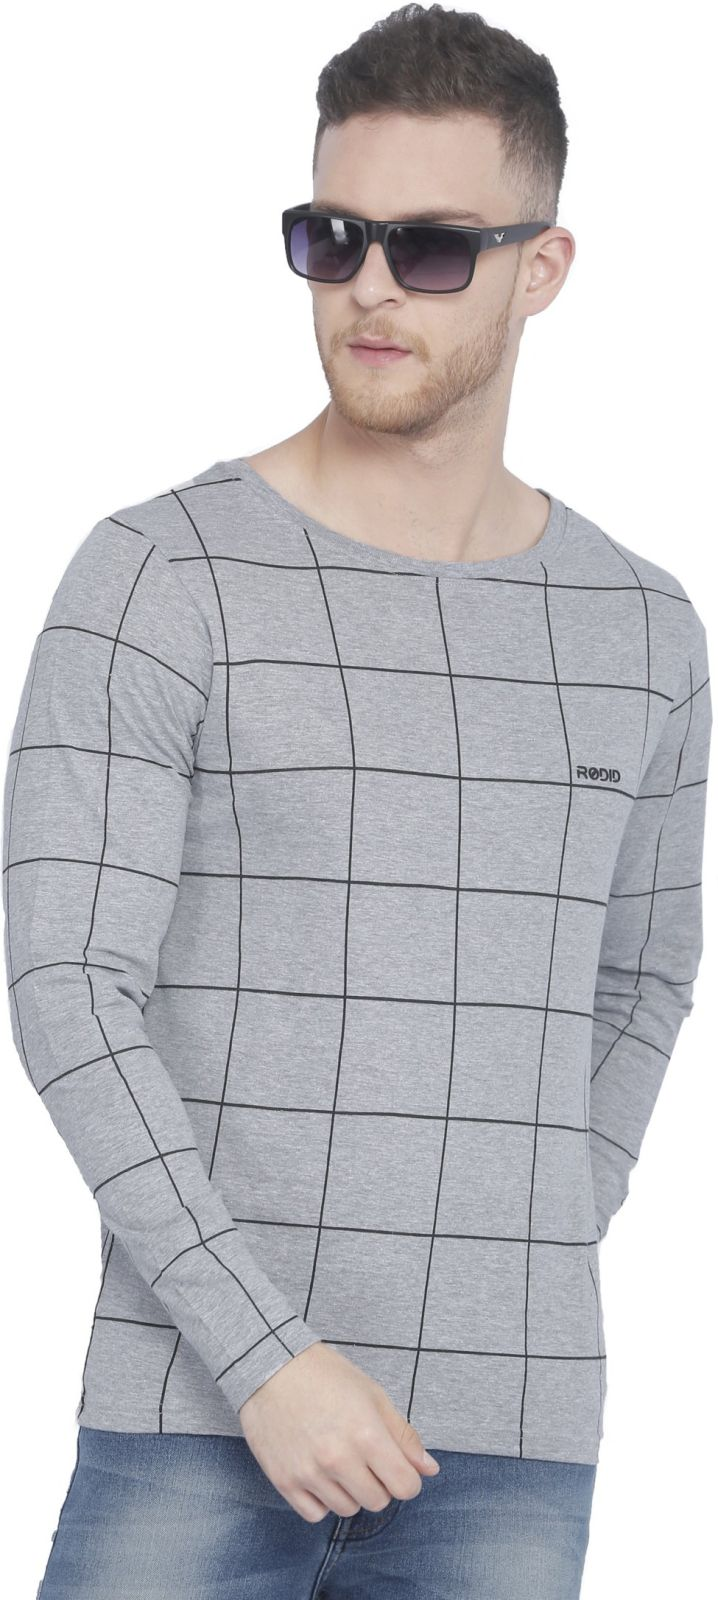 Rodid Printed Mens Boat Neck Grey T-Shirt